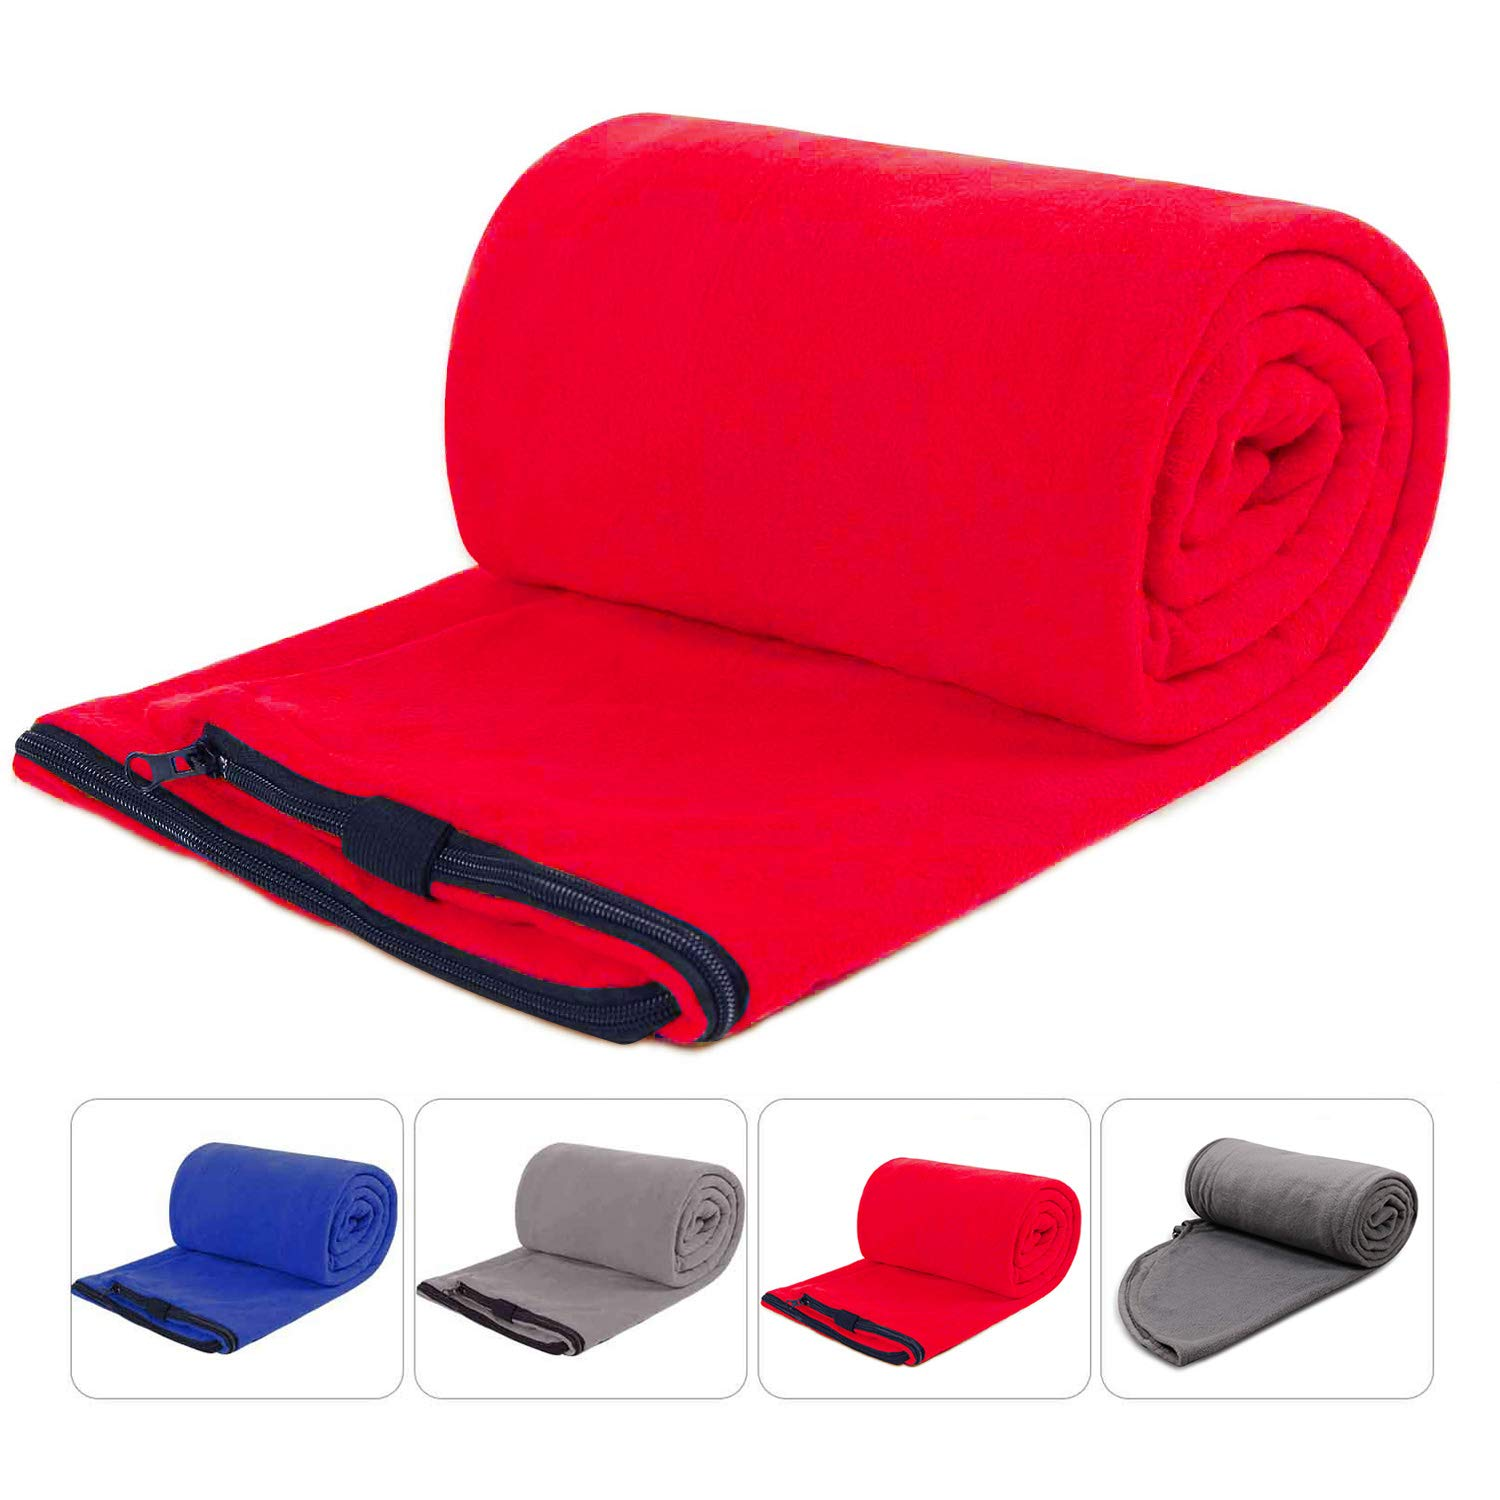 REDCAMP Fleece Sleeping Bag Liner for Adult Warm Weather, Full Sized Zipper Backpacking Blanket for Outdoor Camping or Indoor Used with Sack,Red by REDCAMP